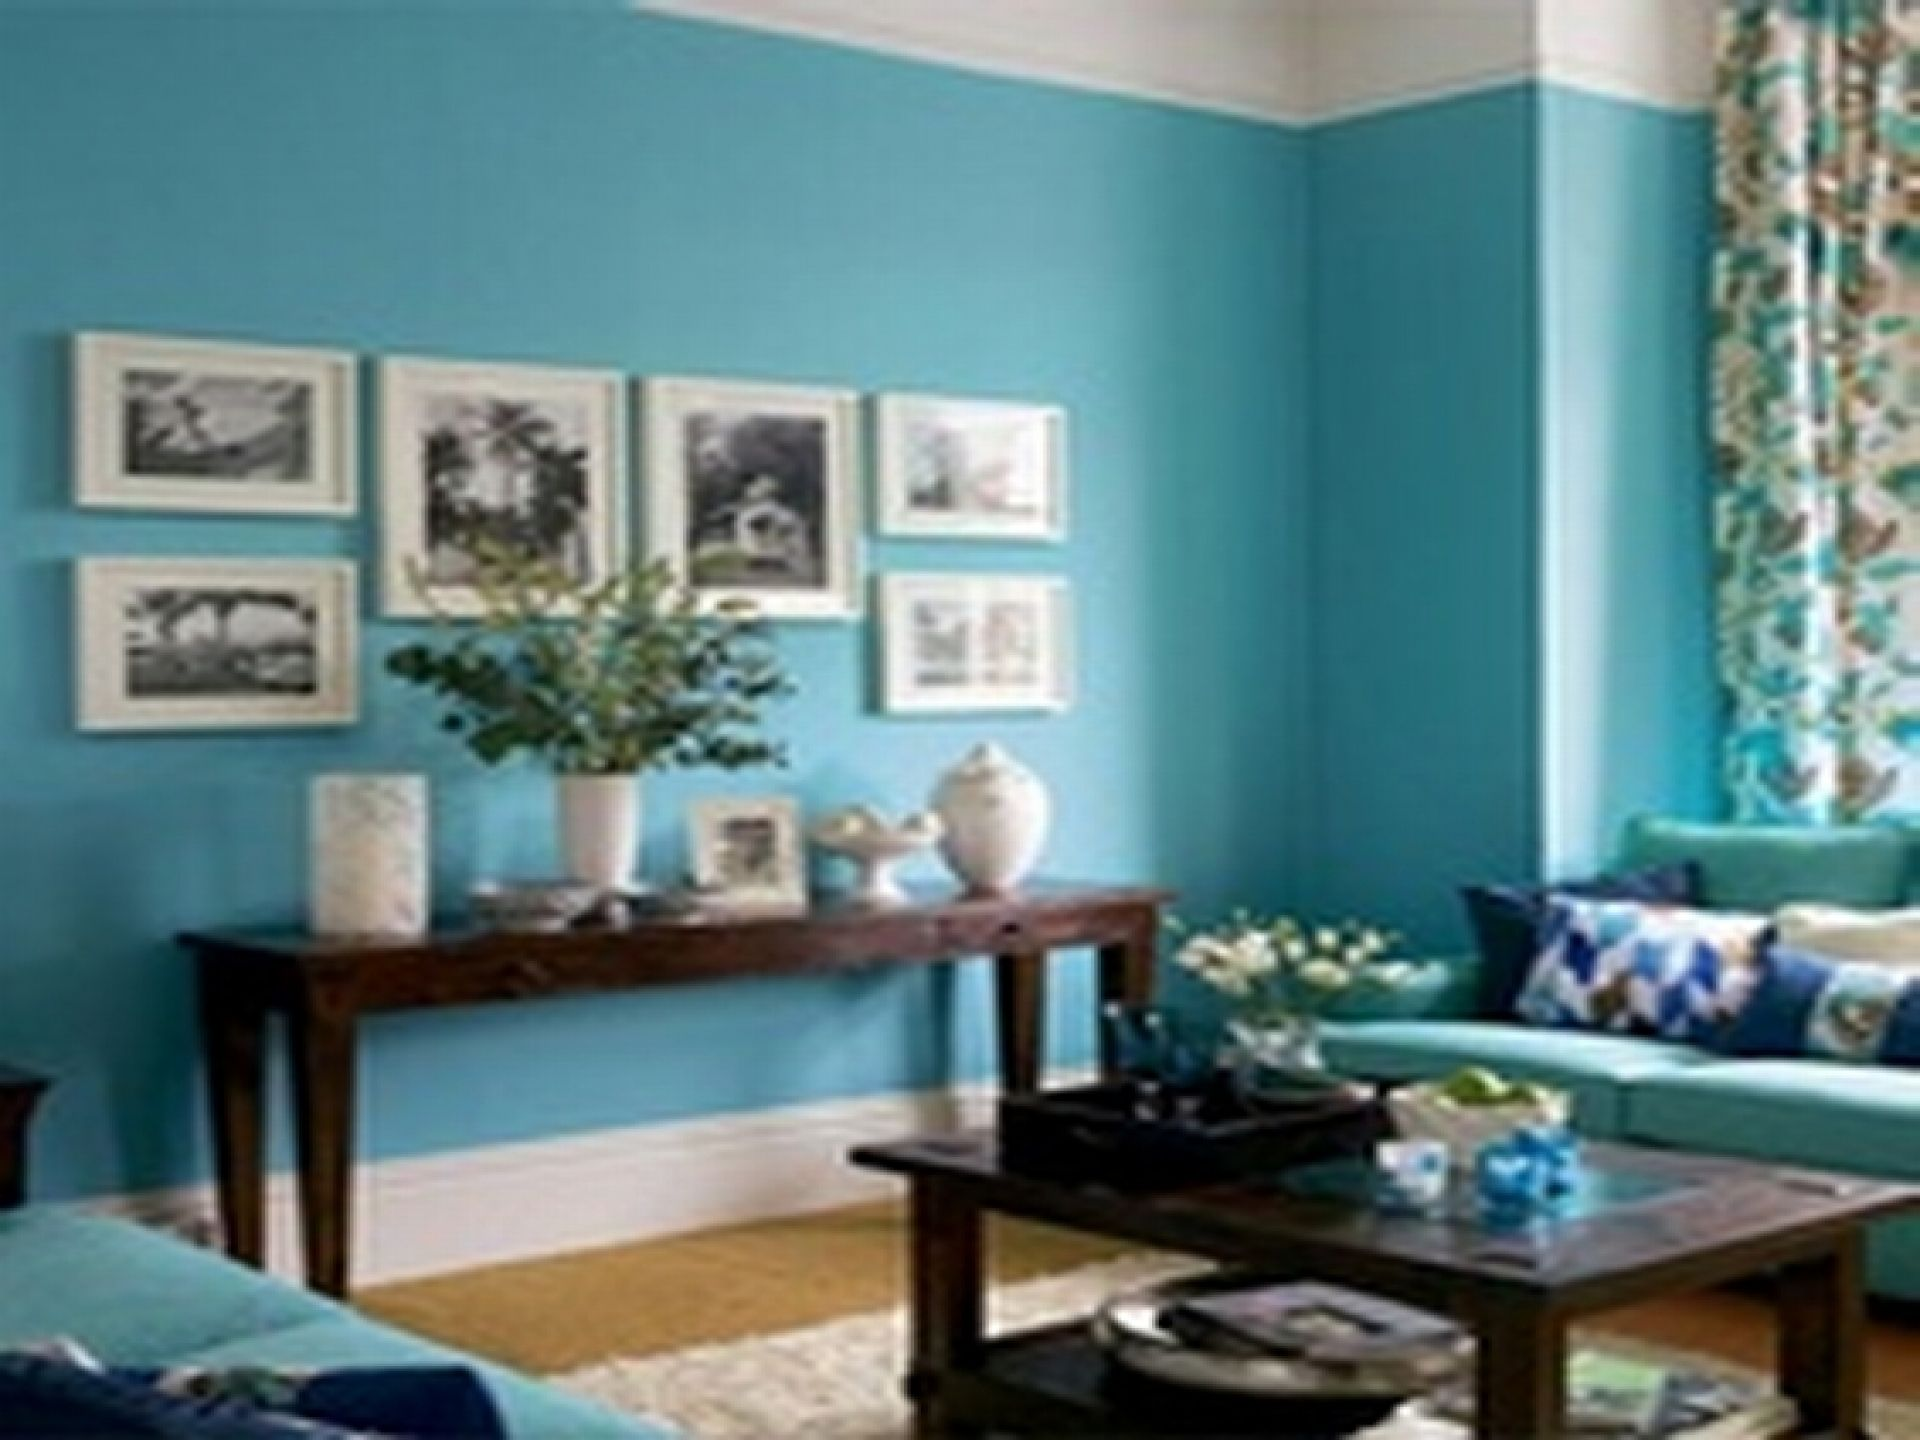 Lavish White Portray Frames Attached On Blue Wall Painted Over